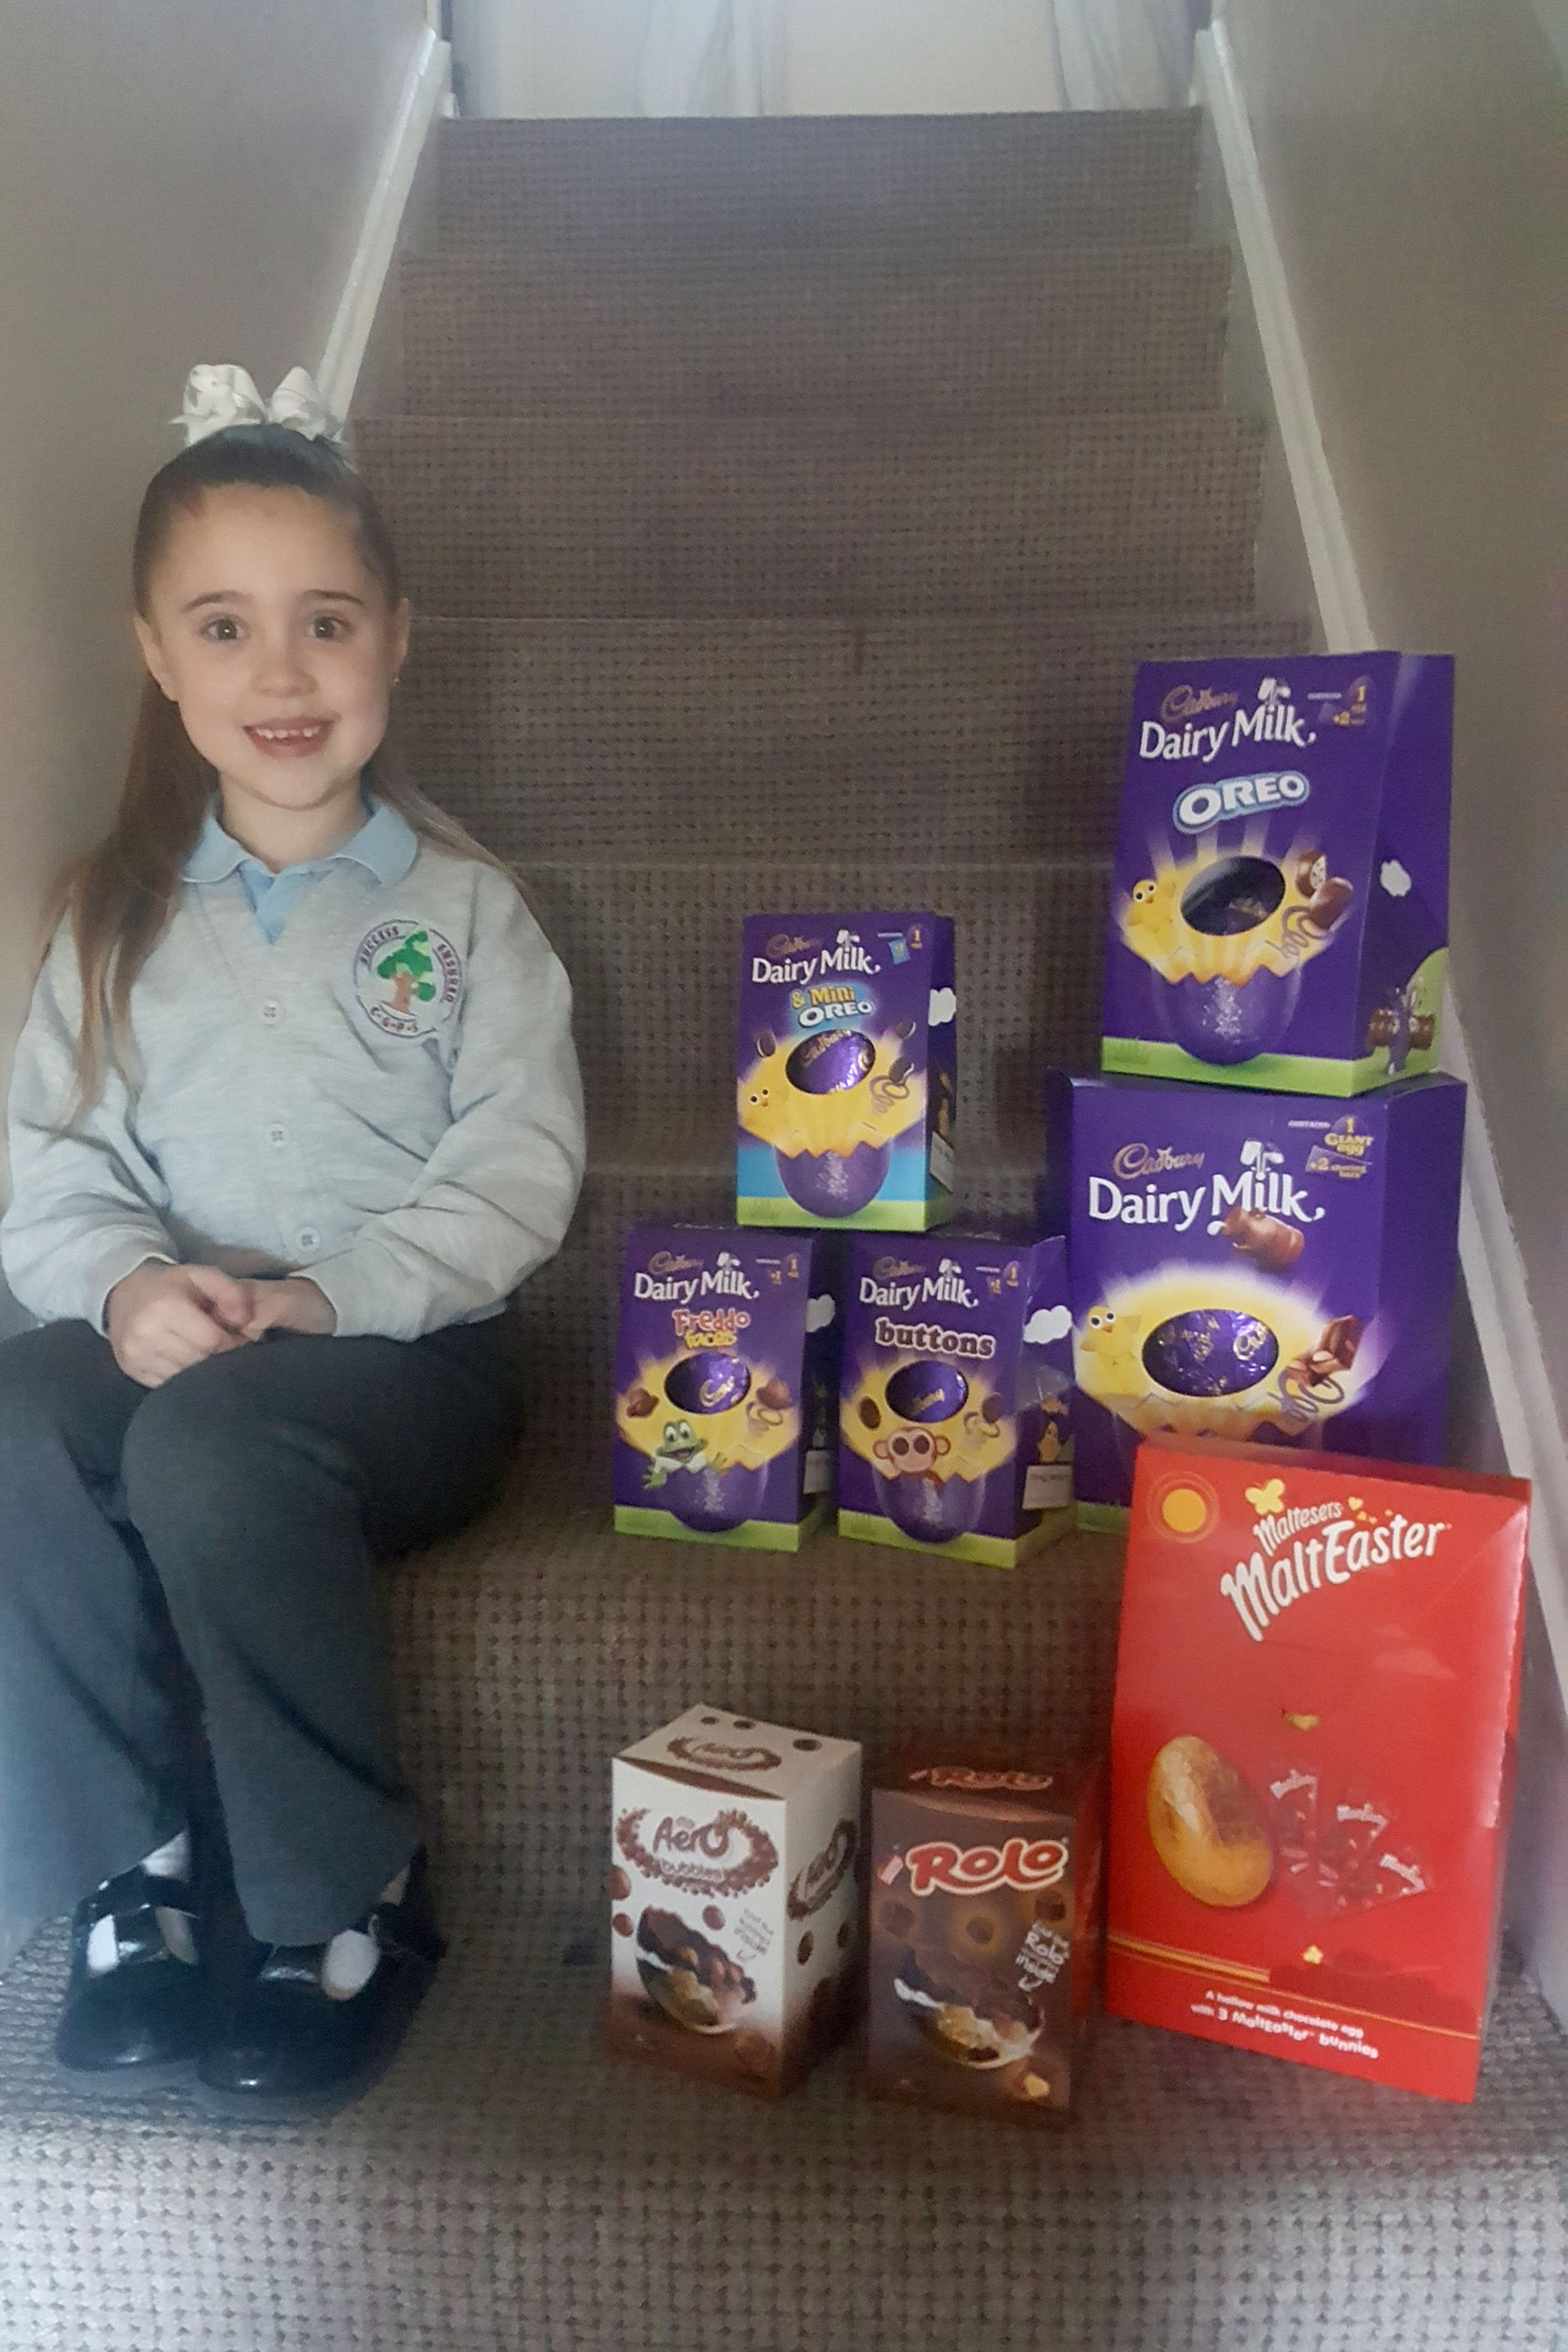 The schoolgirl has collected more than 1000 Easter eggs in three years. Credit: Caters